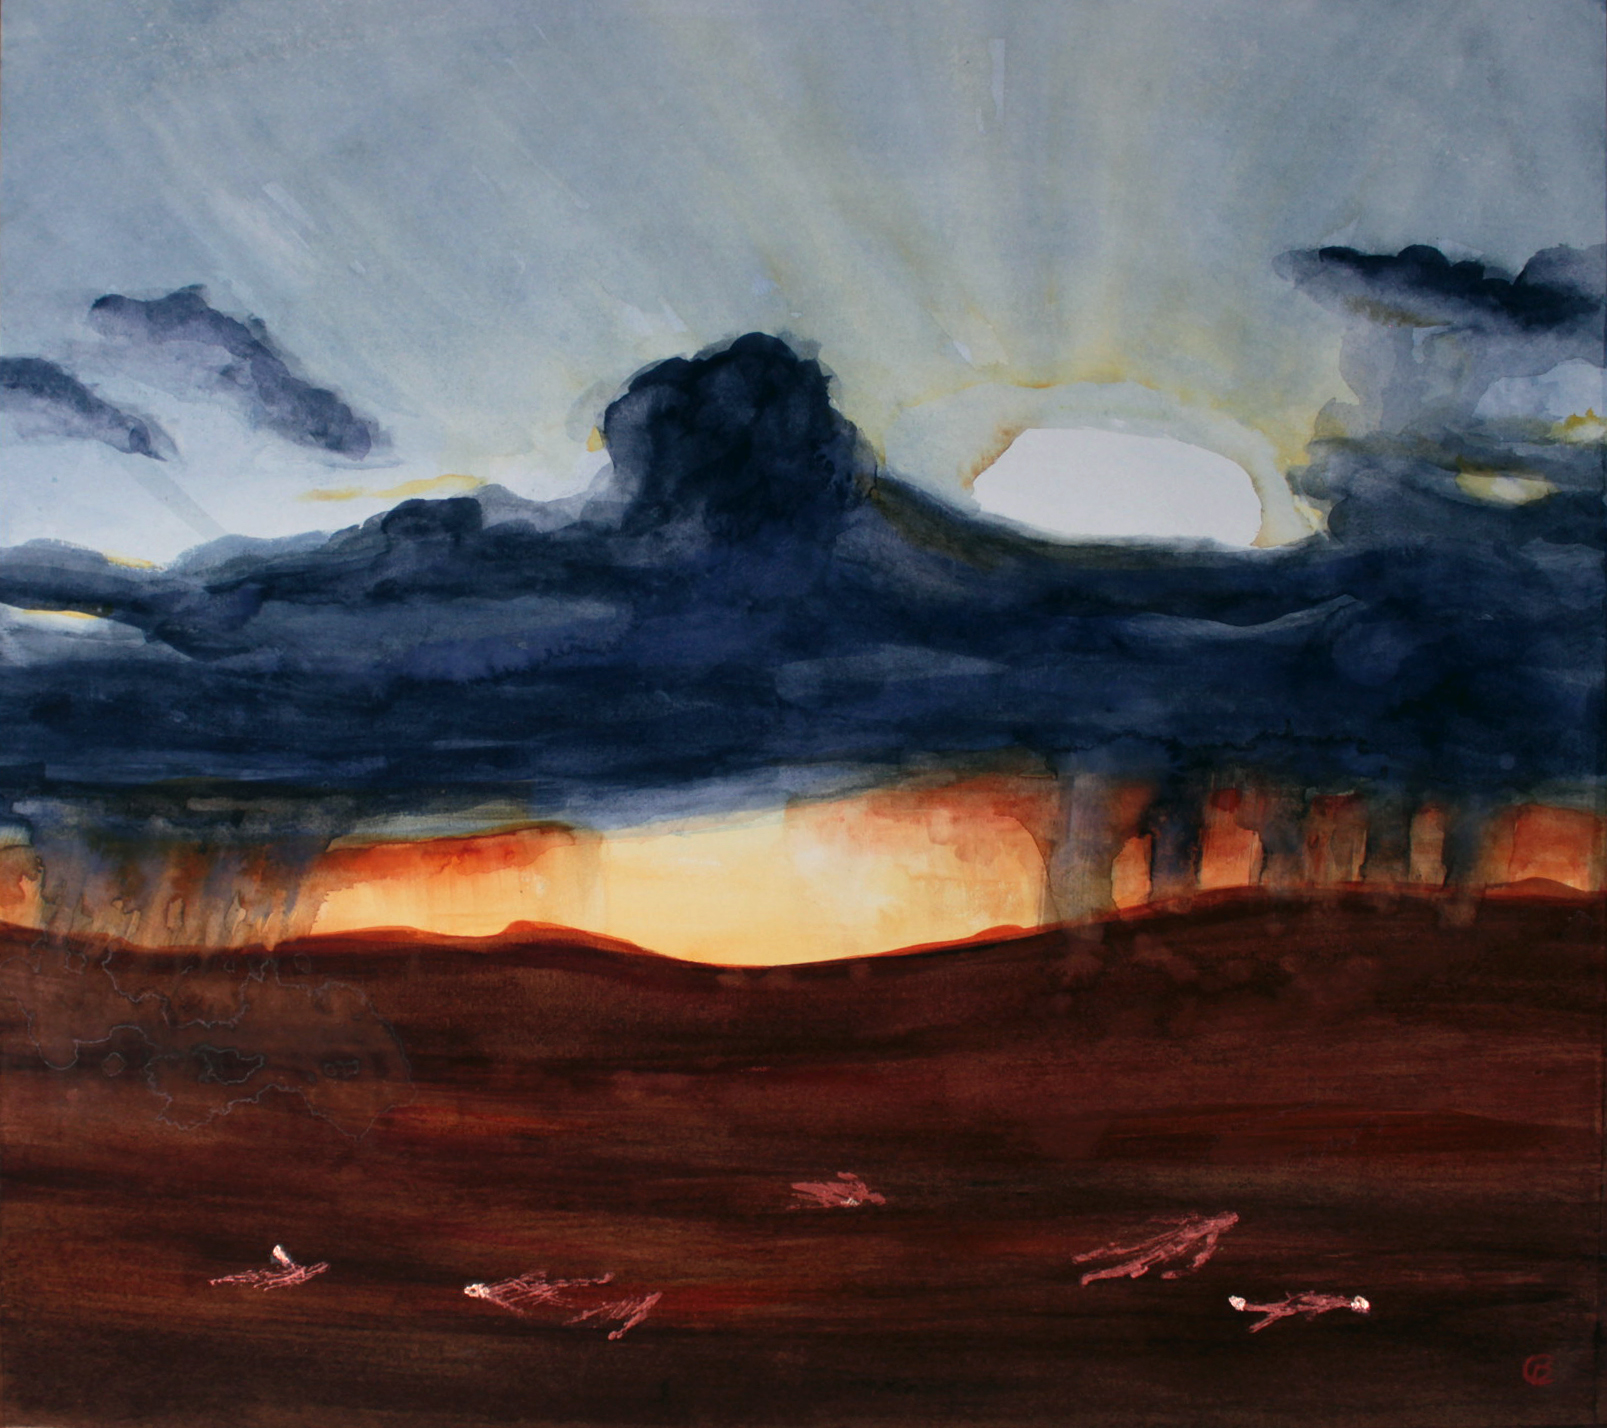 painting with copper leaf of sunset bog scene with bog bodies